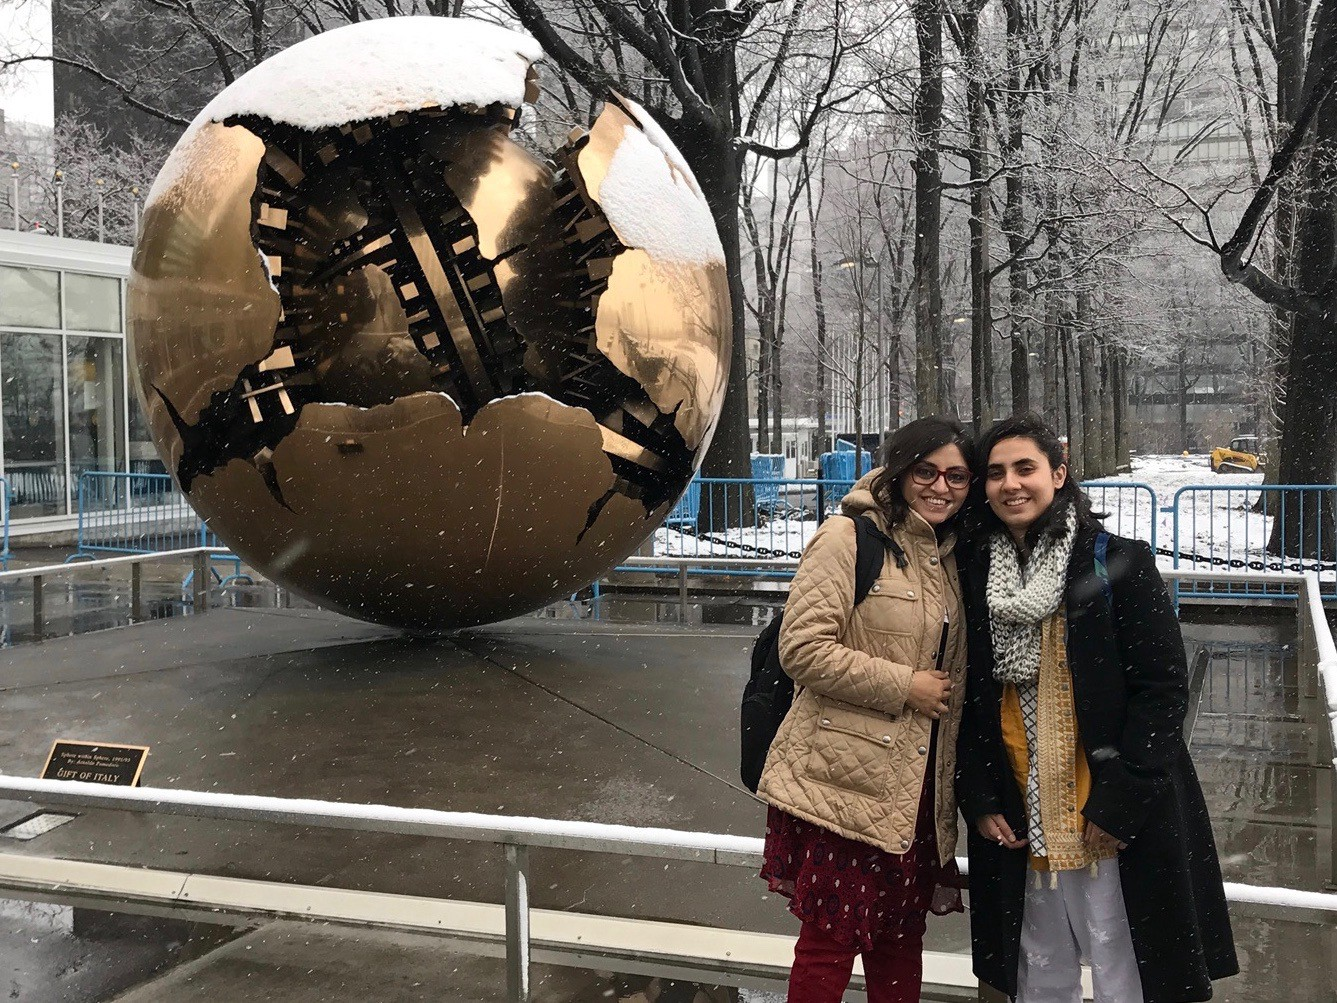 Noorena and Gulalai in front of the UN — it was their first time seeing snowfall! (Courtesy of Tess Thomas / Malala Fund)